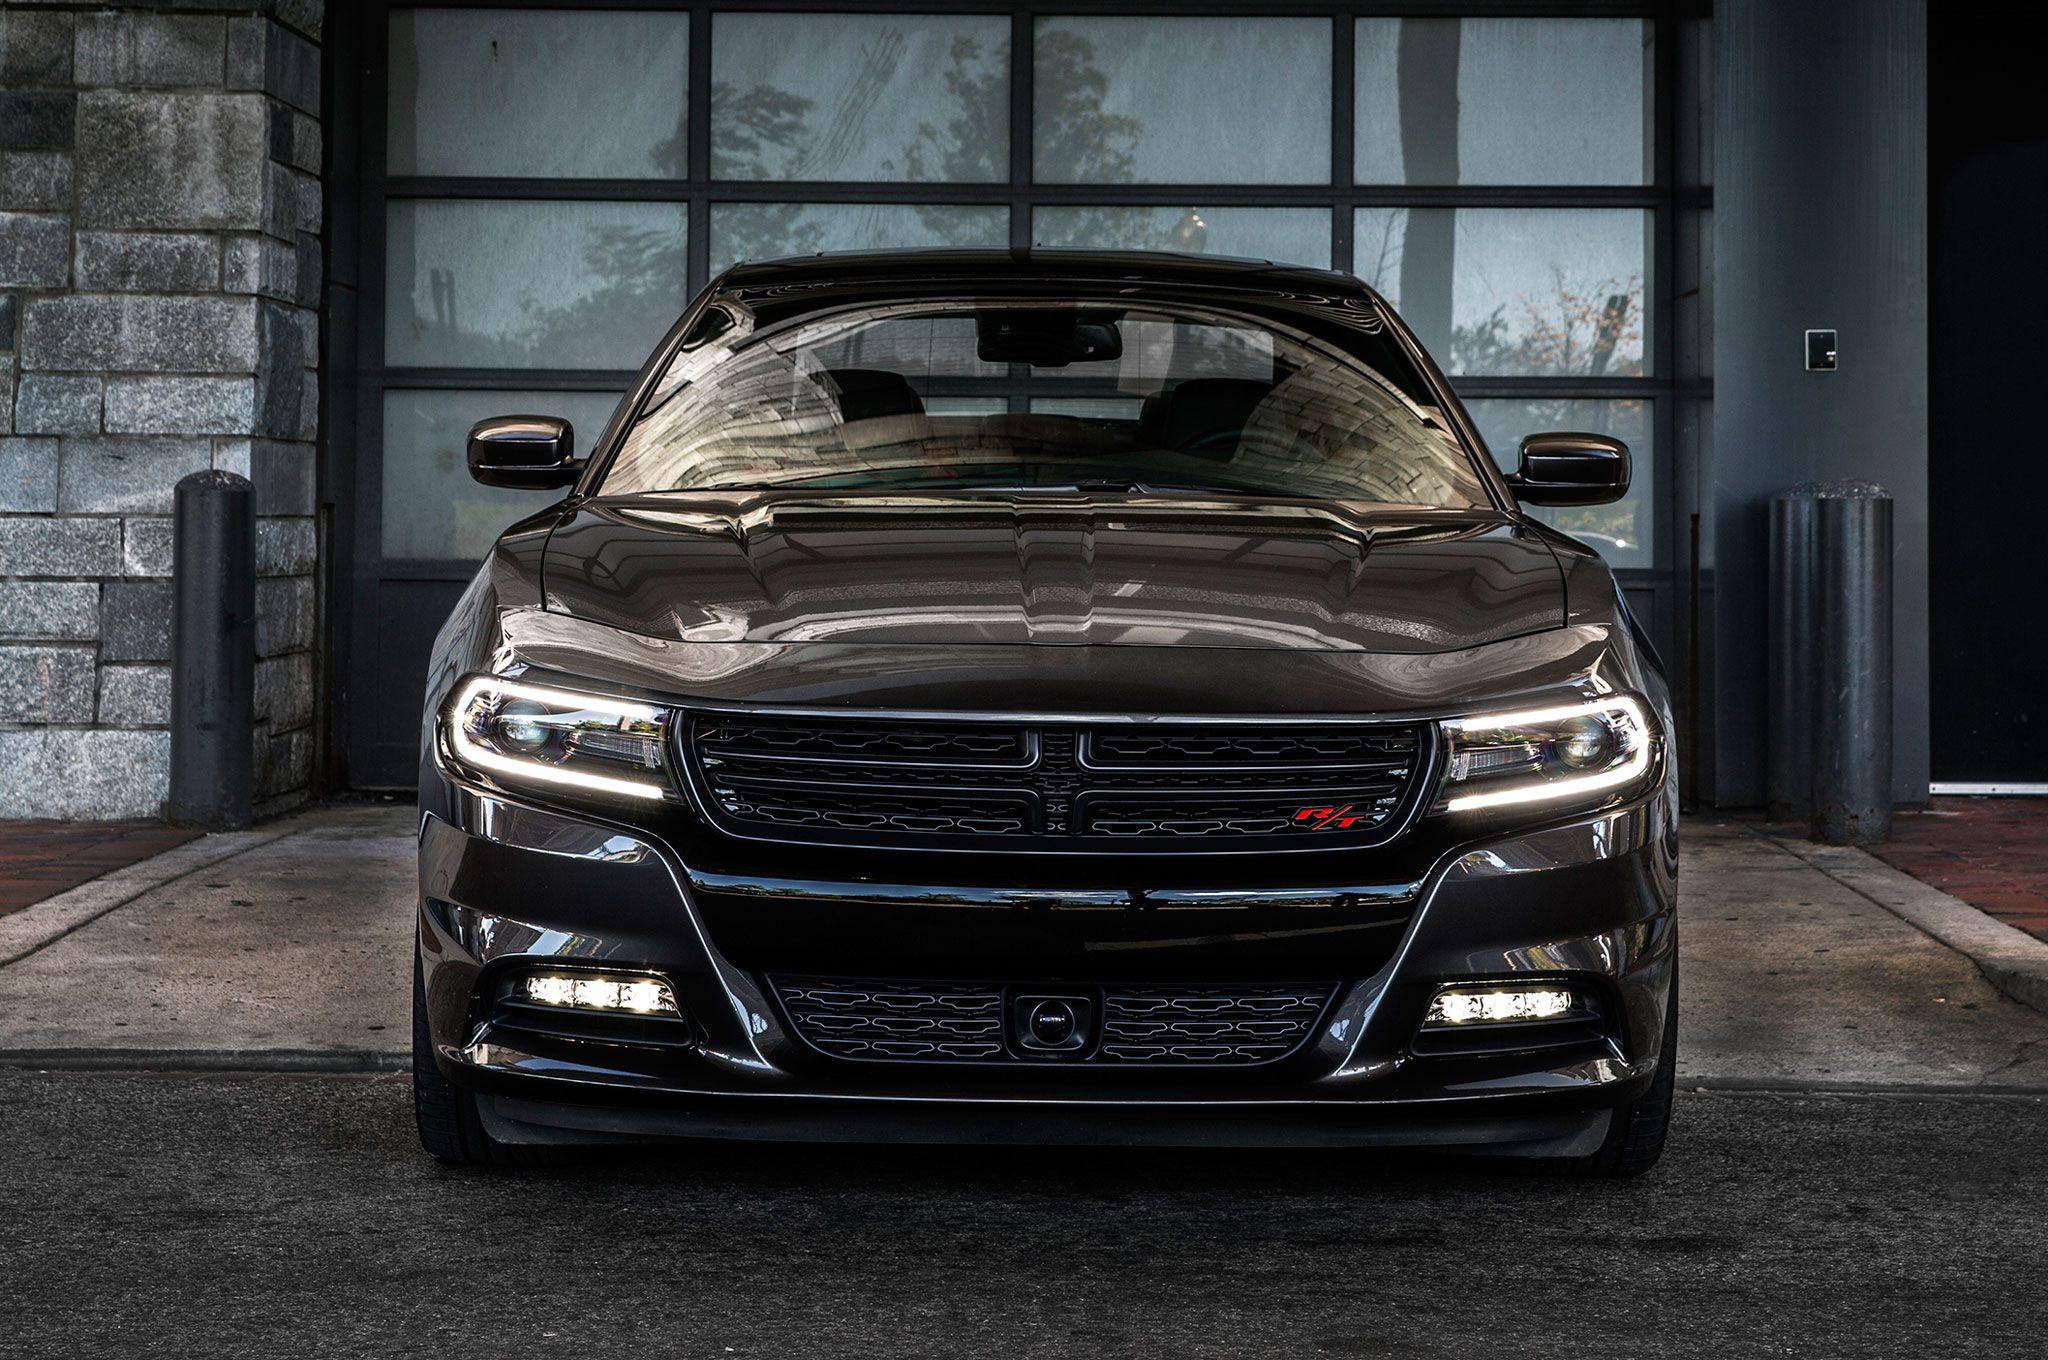 Dodge Charger HD Wallpaper Backgrounds Wallpapers 2048x1360